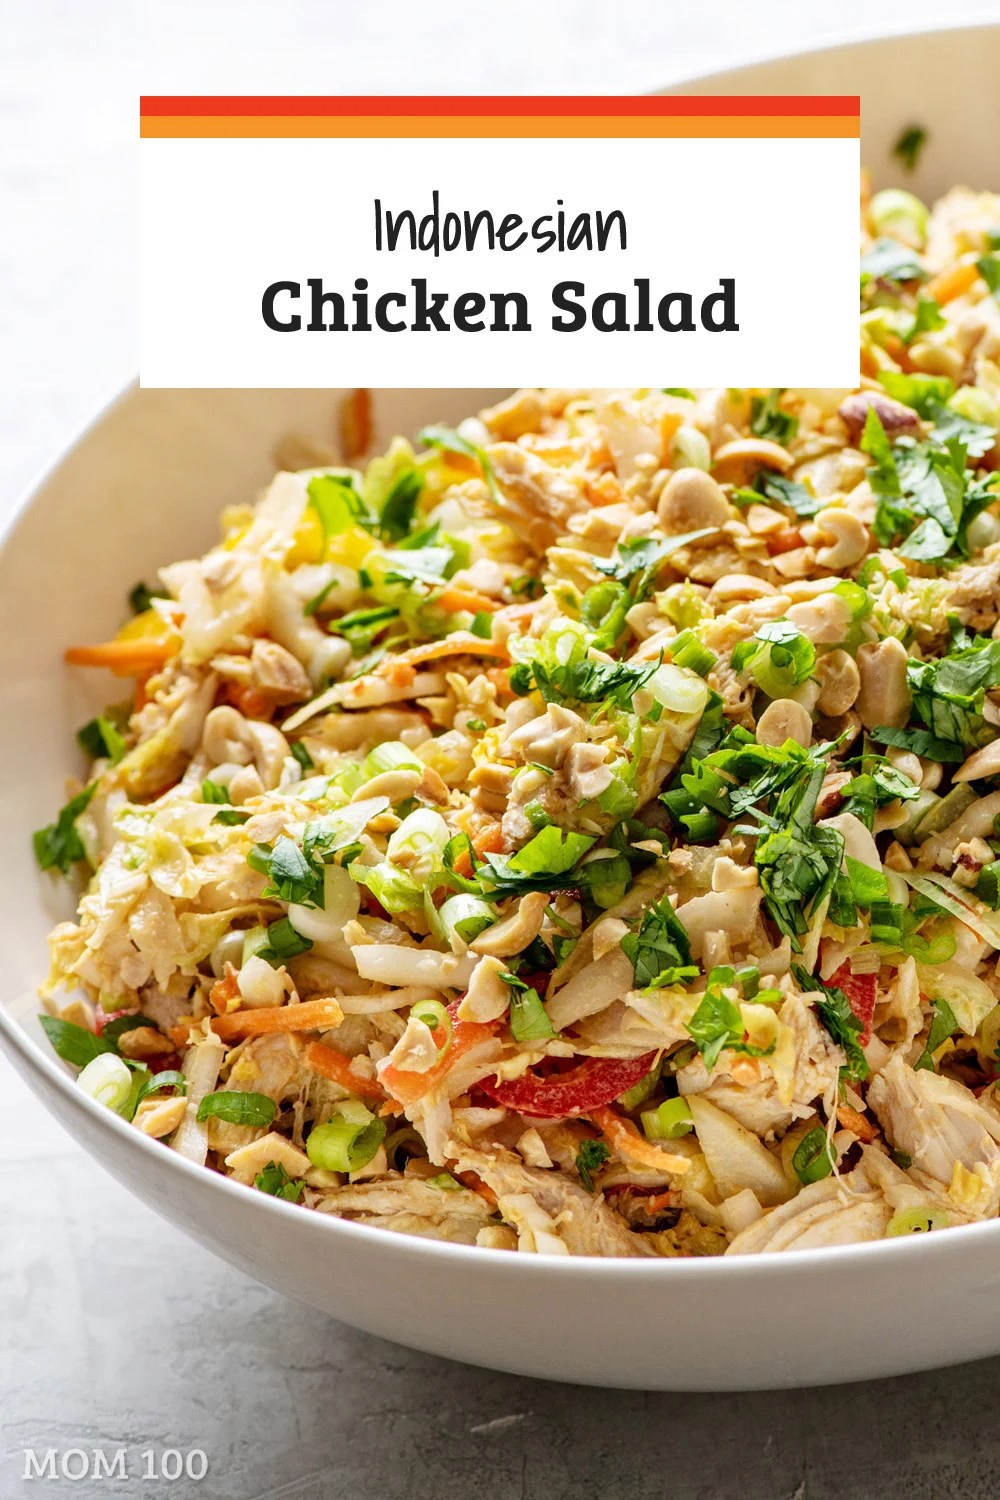 Indonesian Chicken Salad / A collection of amazing Asian flavors come together in this salad. Crunchy vegetables stand up to the tender chicken and a creamy, spicy peanut dressing.